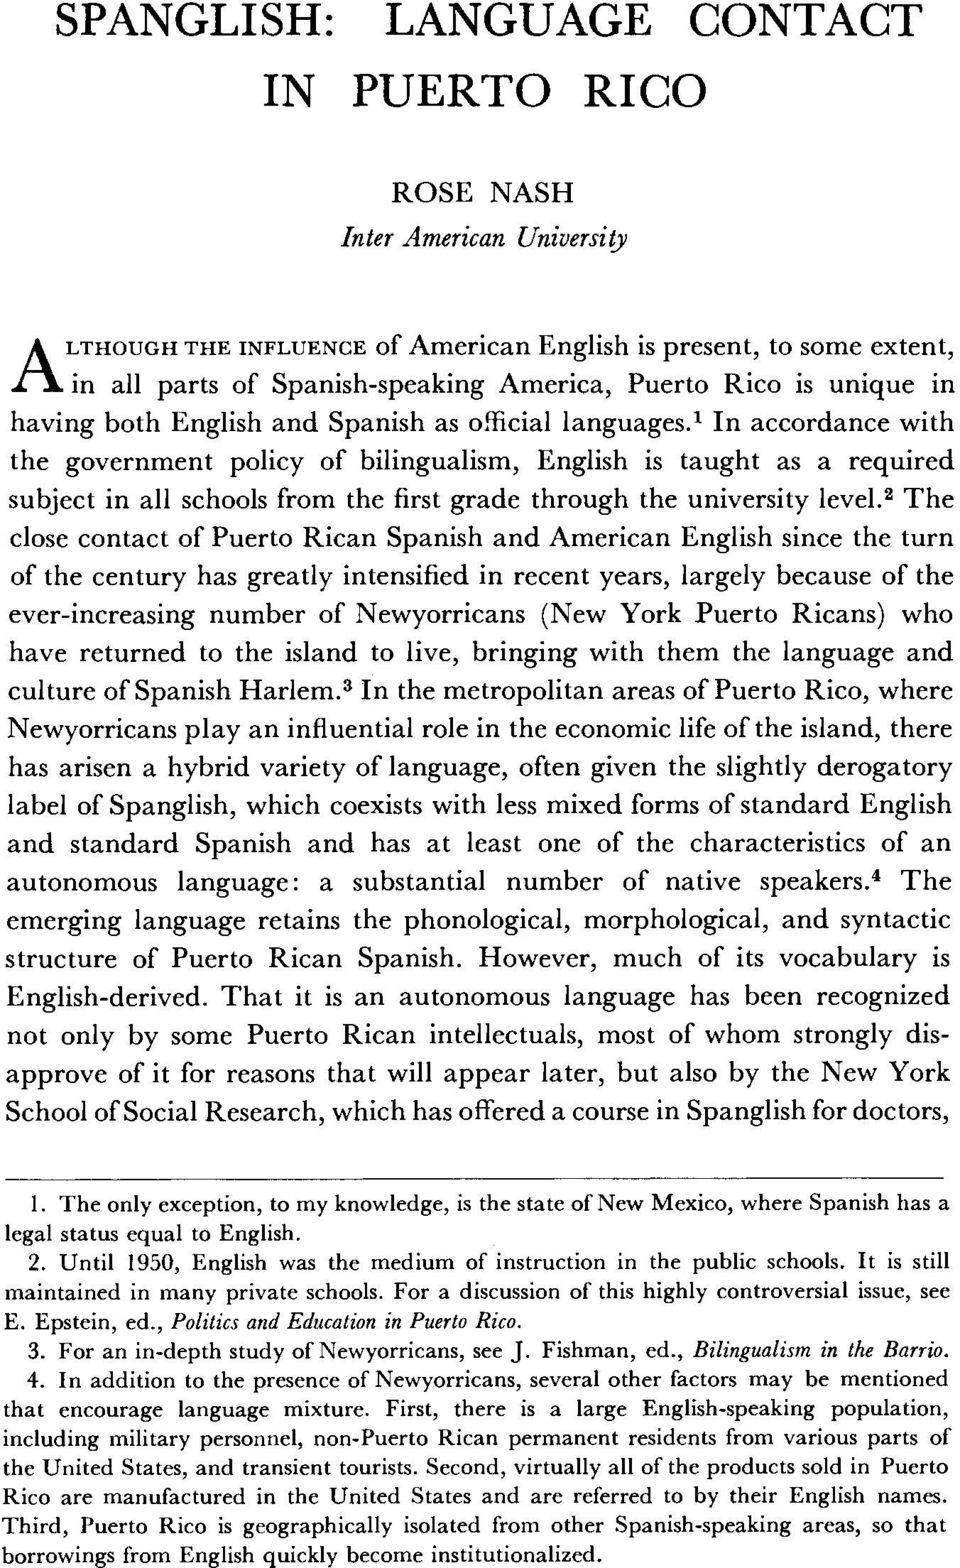 first grade through the university level2 The close contact of Puerto Rican Spanish and American English since the turn of the century has greatly intensified in recent years, largely because of the